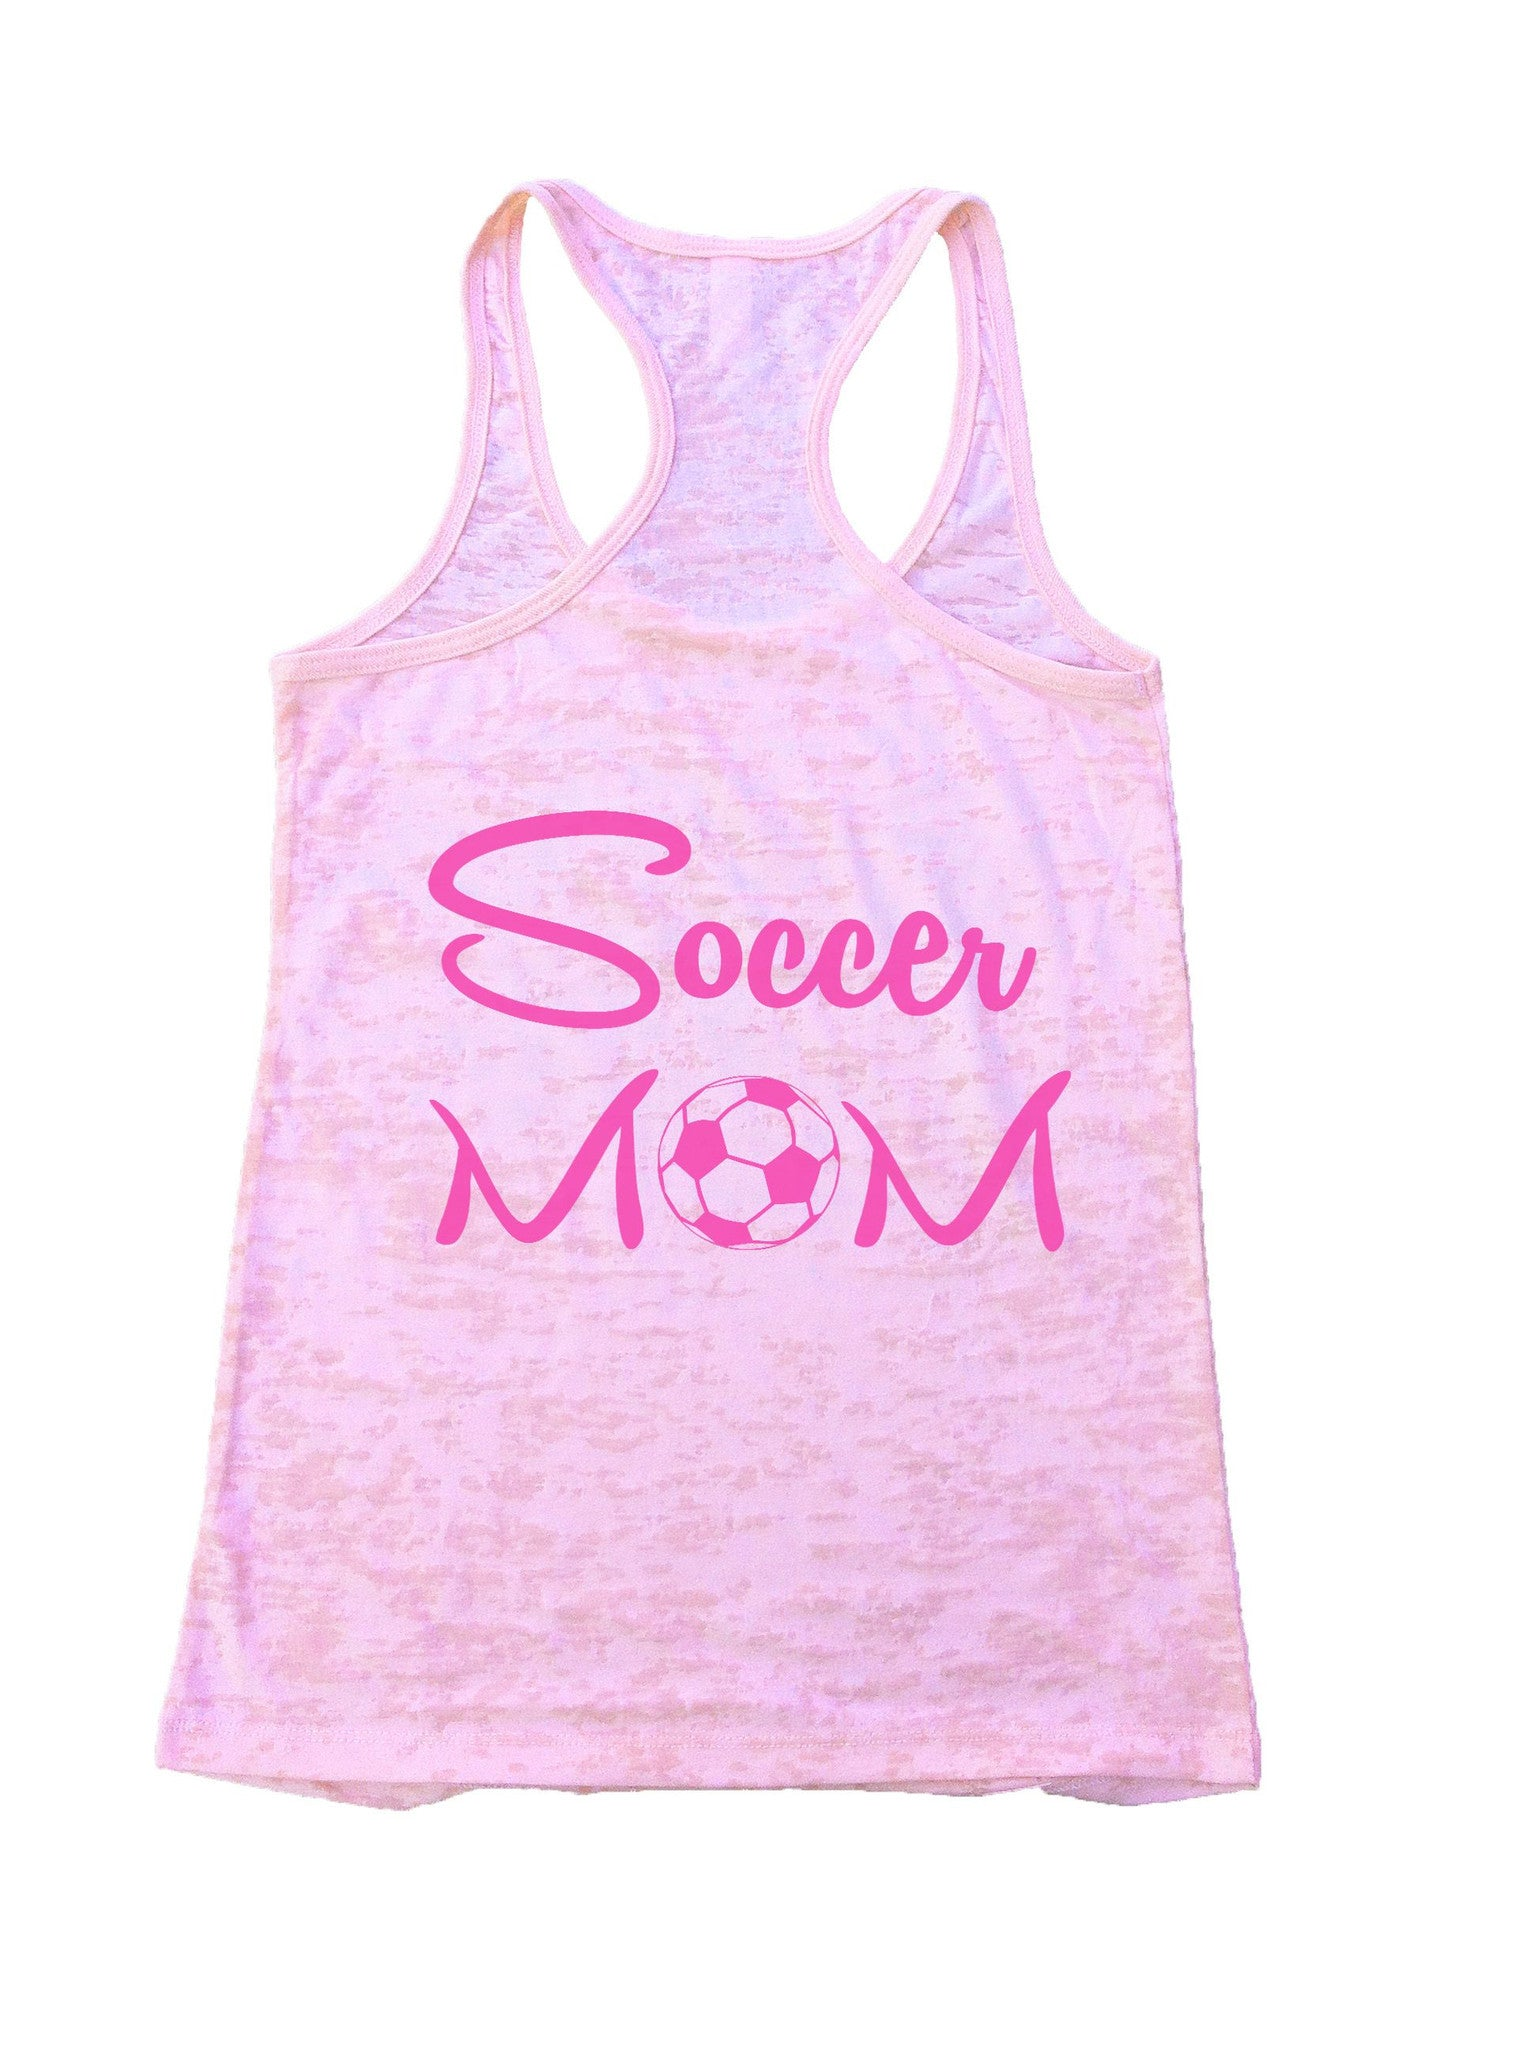 Soccer Mom Burnout Tank Top By BurnoutTankTops.com - 658 - Funny Shirts Tank Tops Burnouts and Triblends  - 2